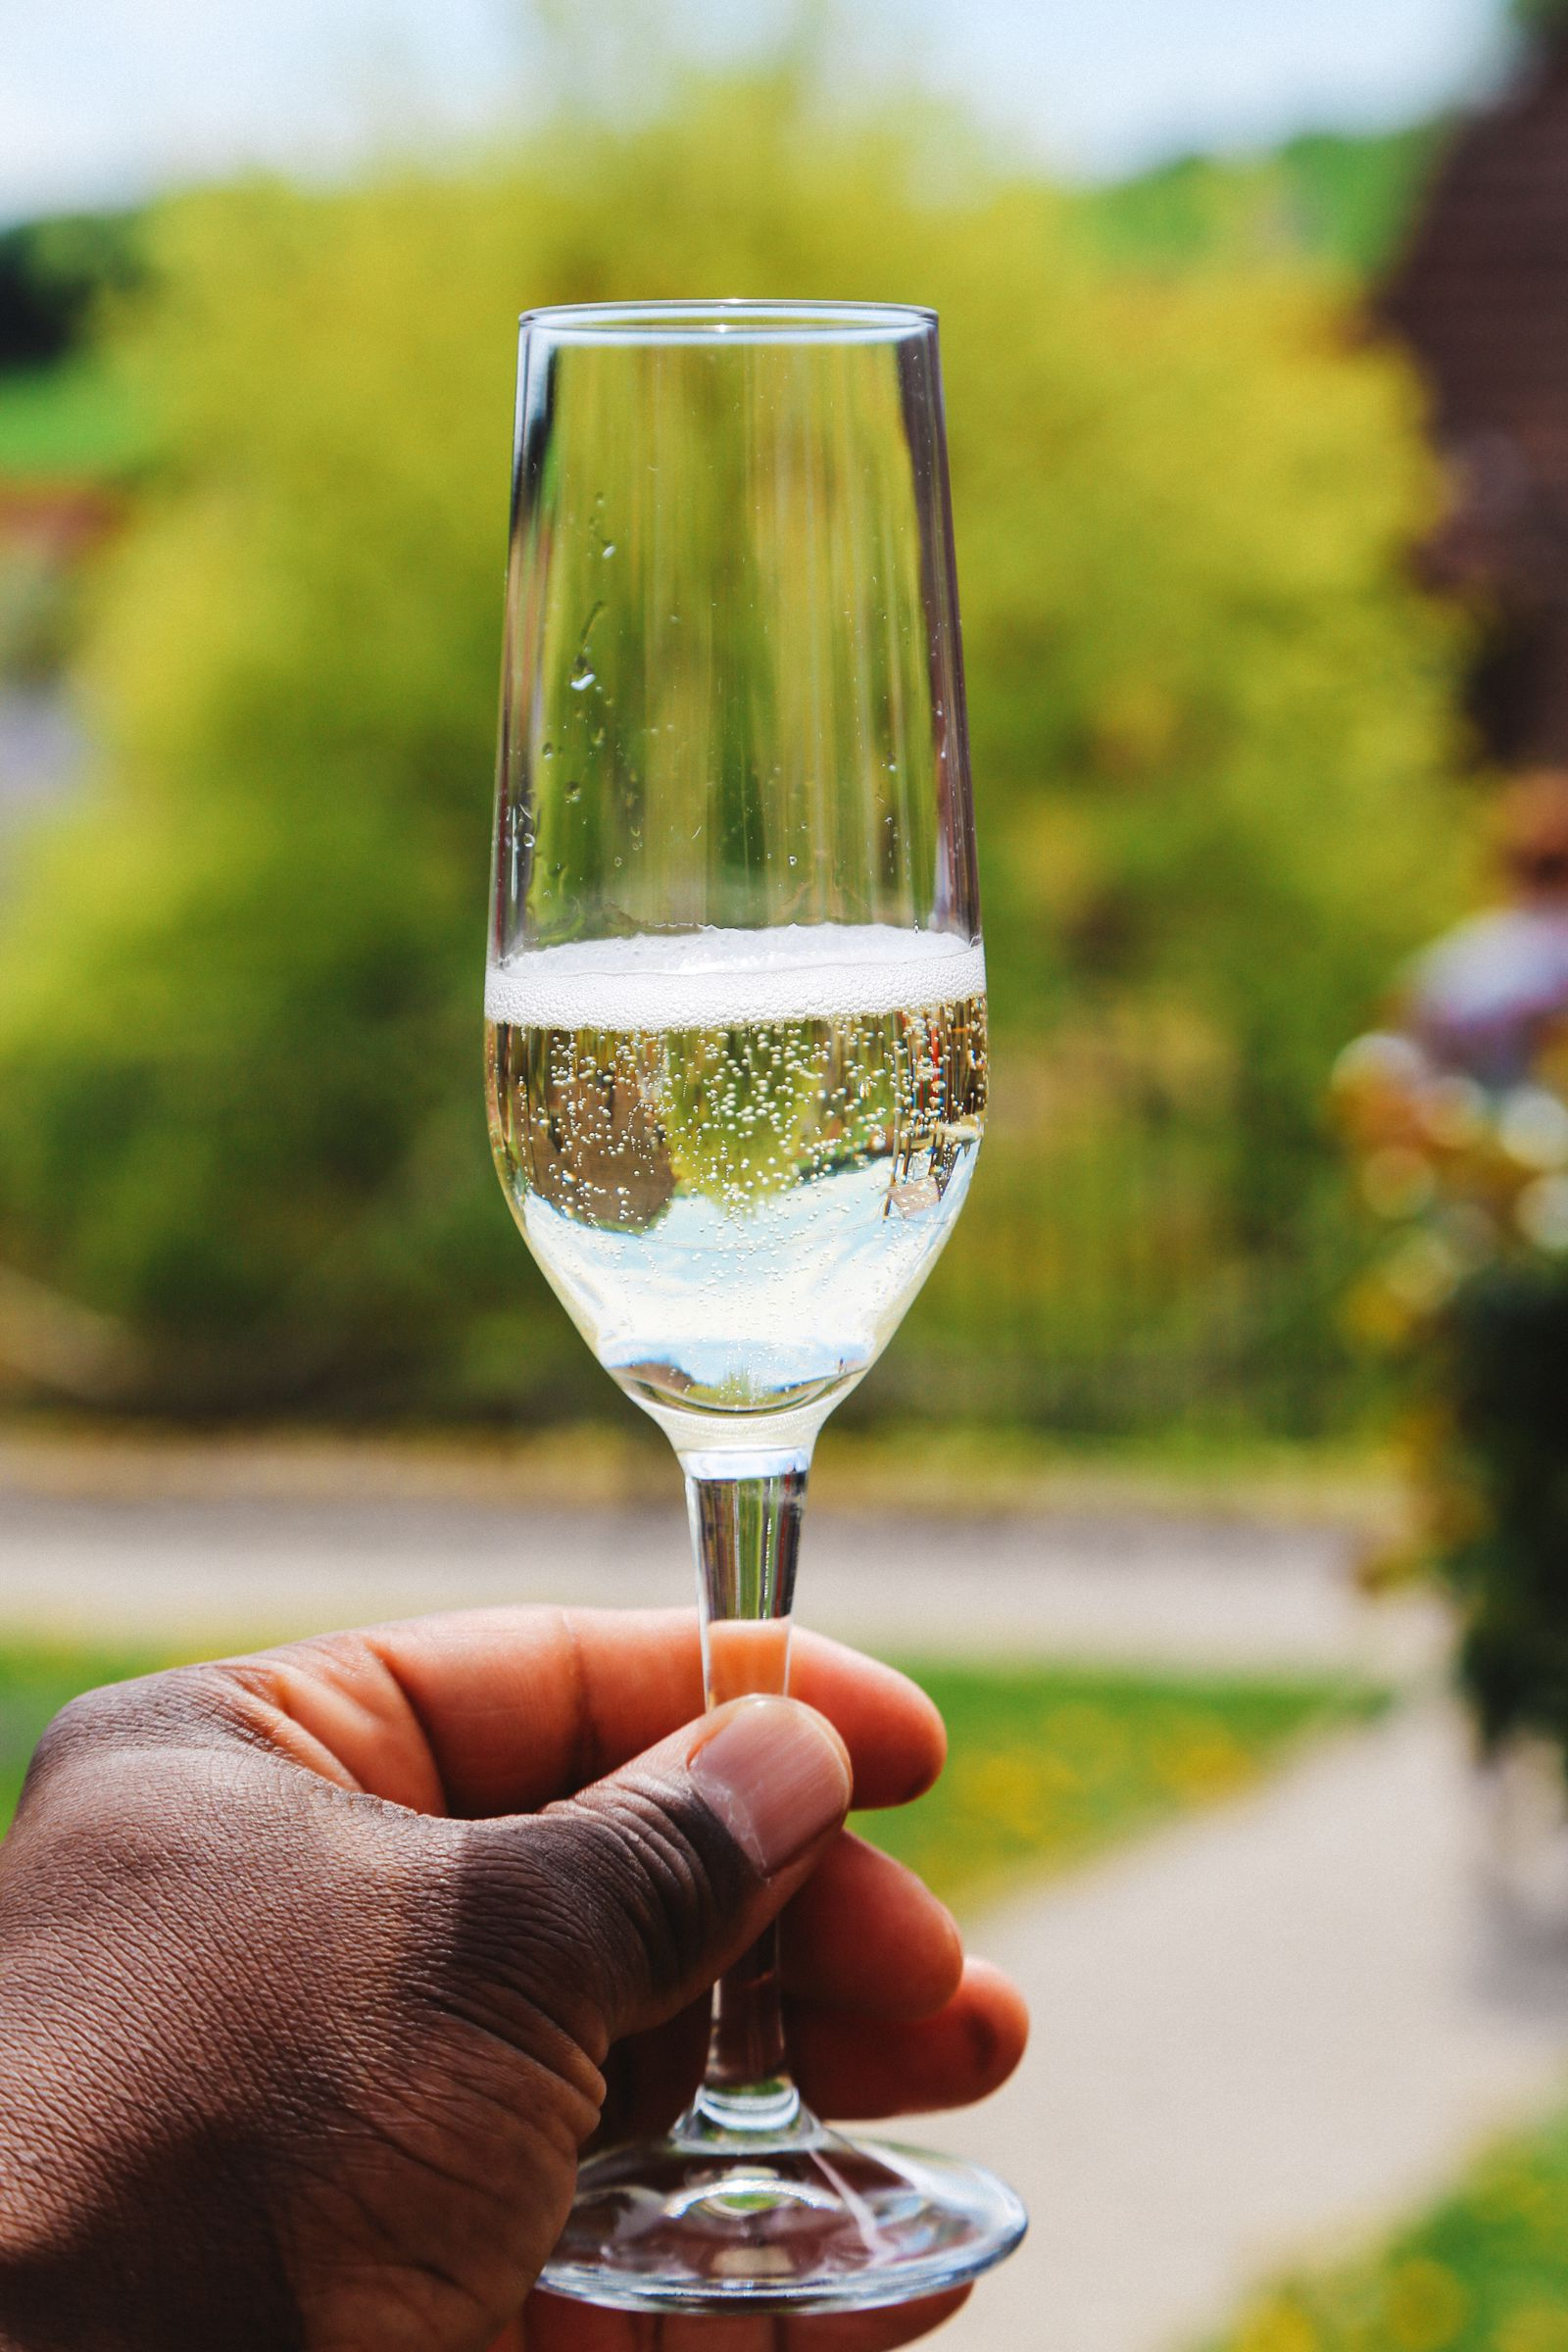 There's A Big Reason You Should Visit Slovenia This Year - The Wine! (53)